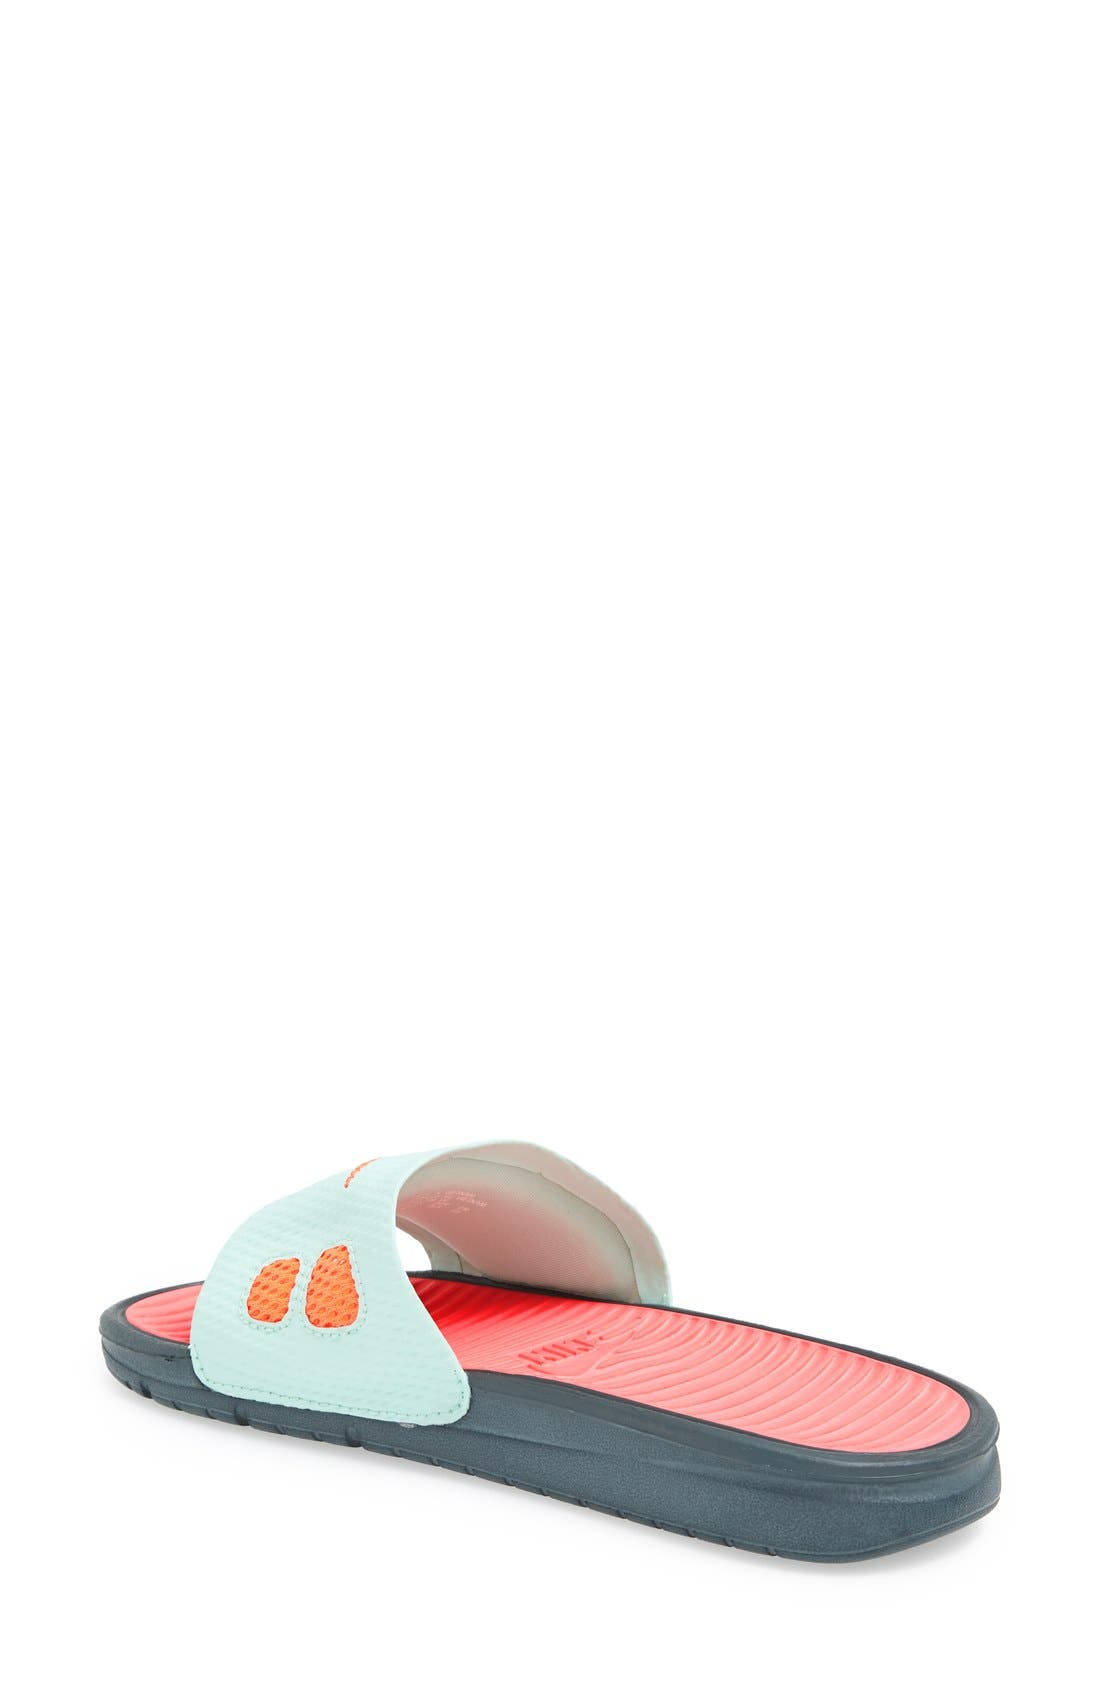 Alternate Image 3  - Nike 'Benassi - Solarsoft' Slide Sandal (Women)